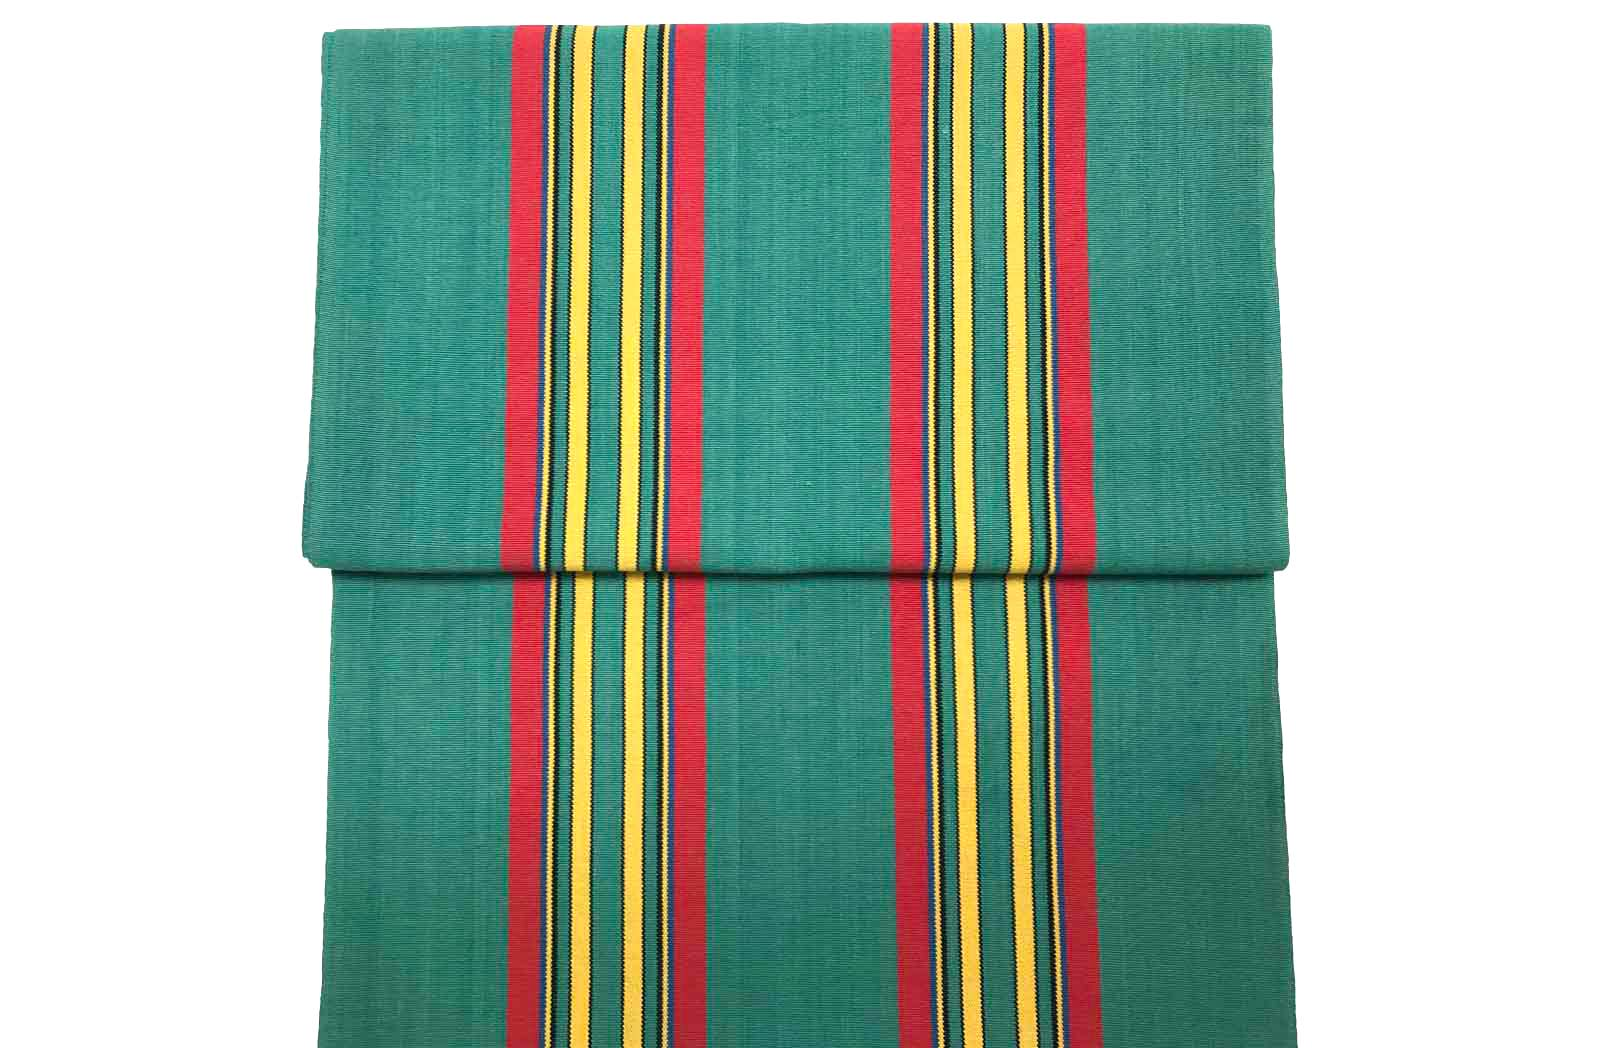 Replacement Deck Chair Slings Jade green, red, yellow stripe